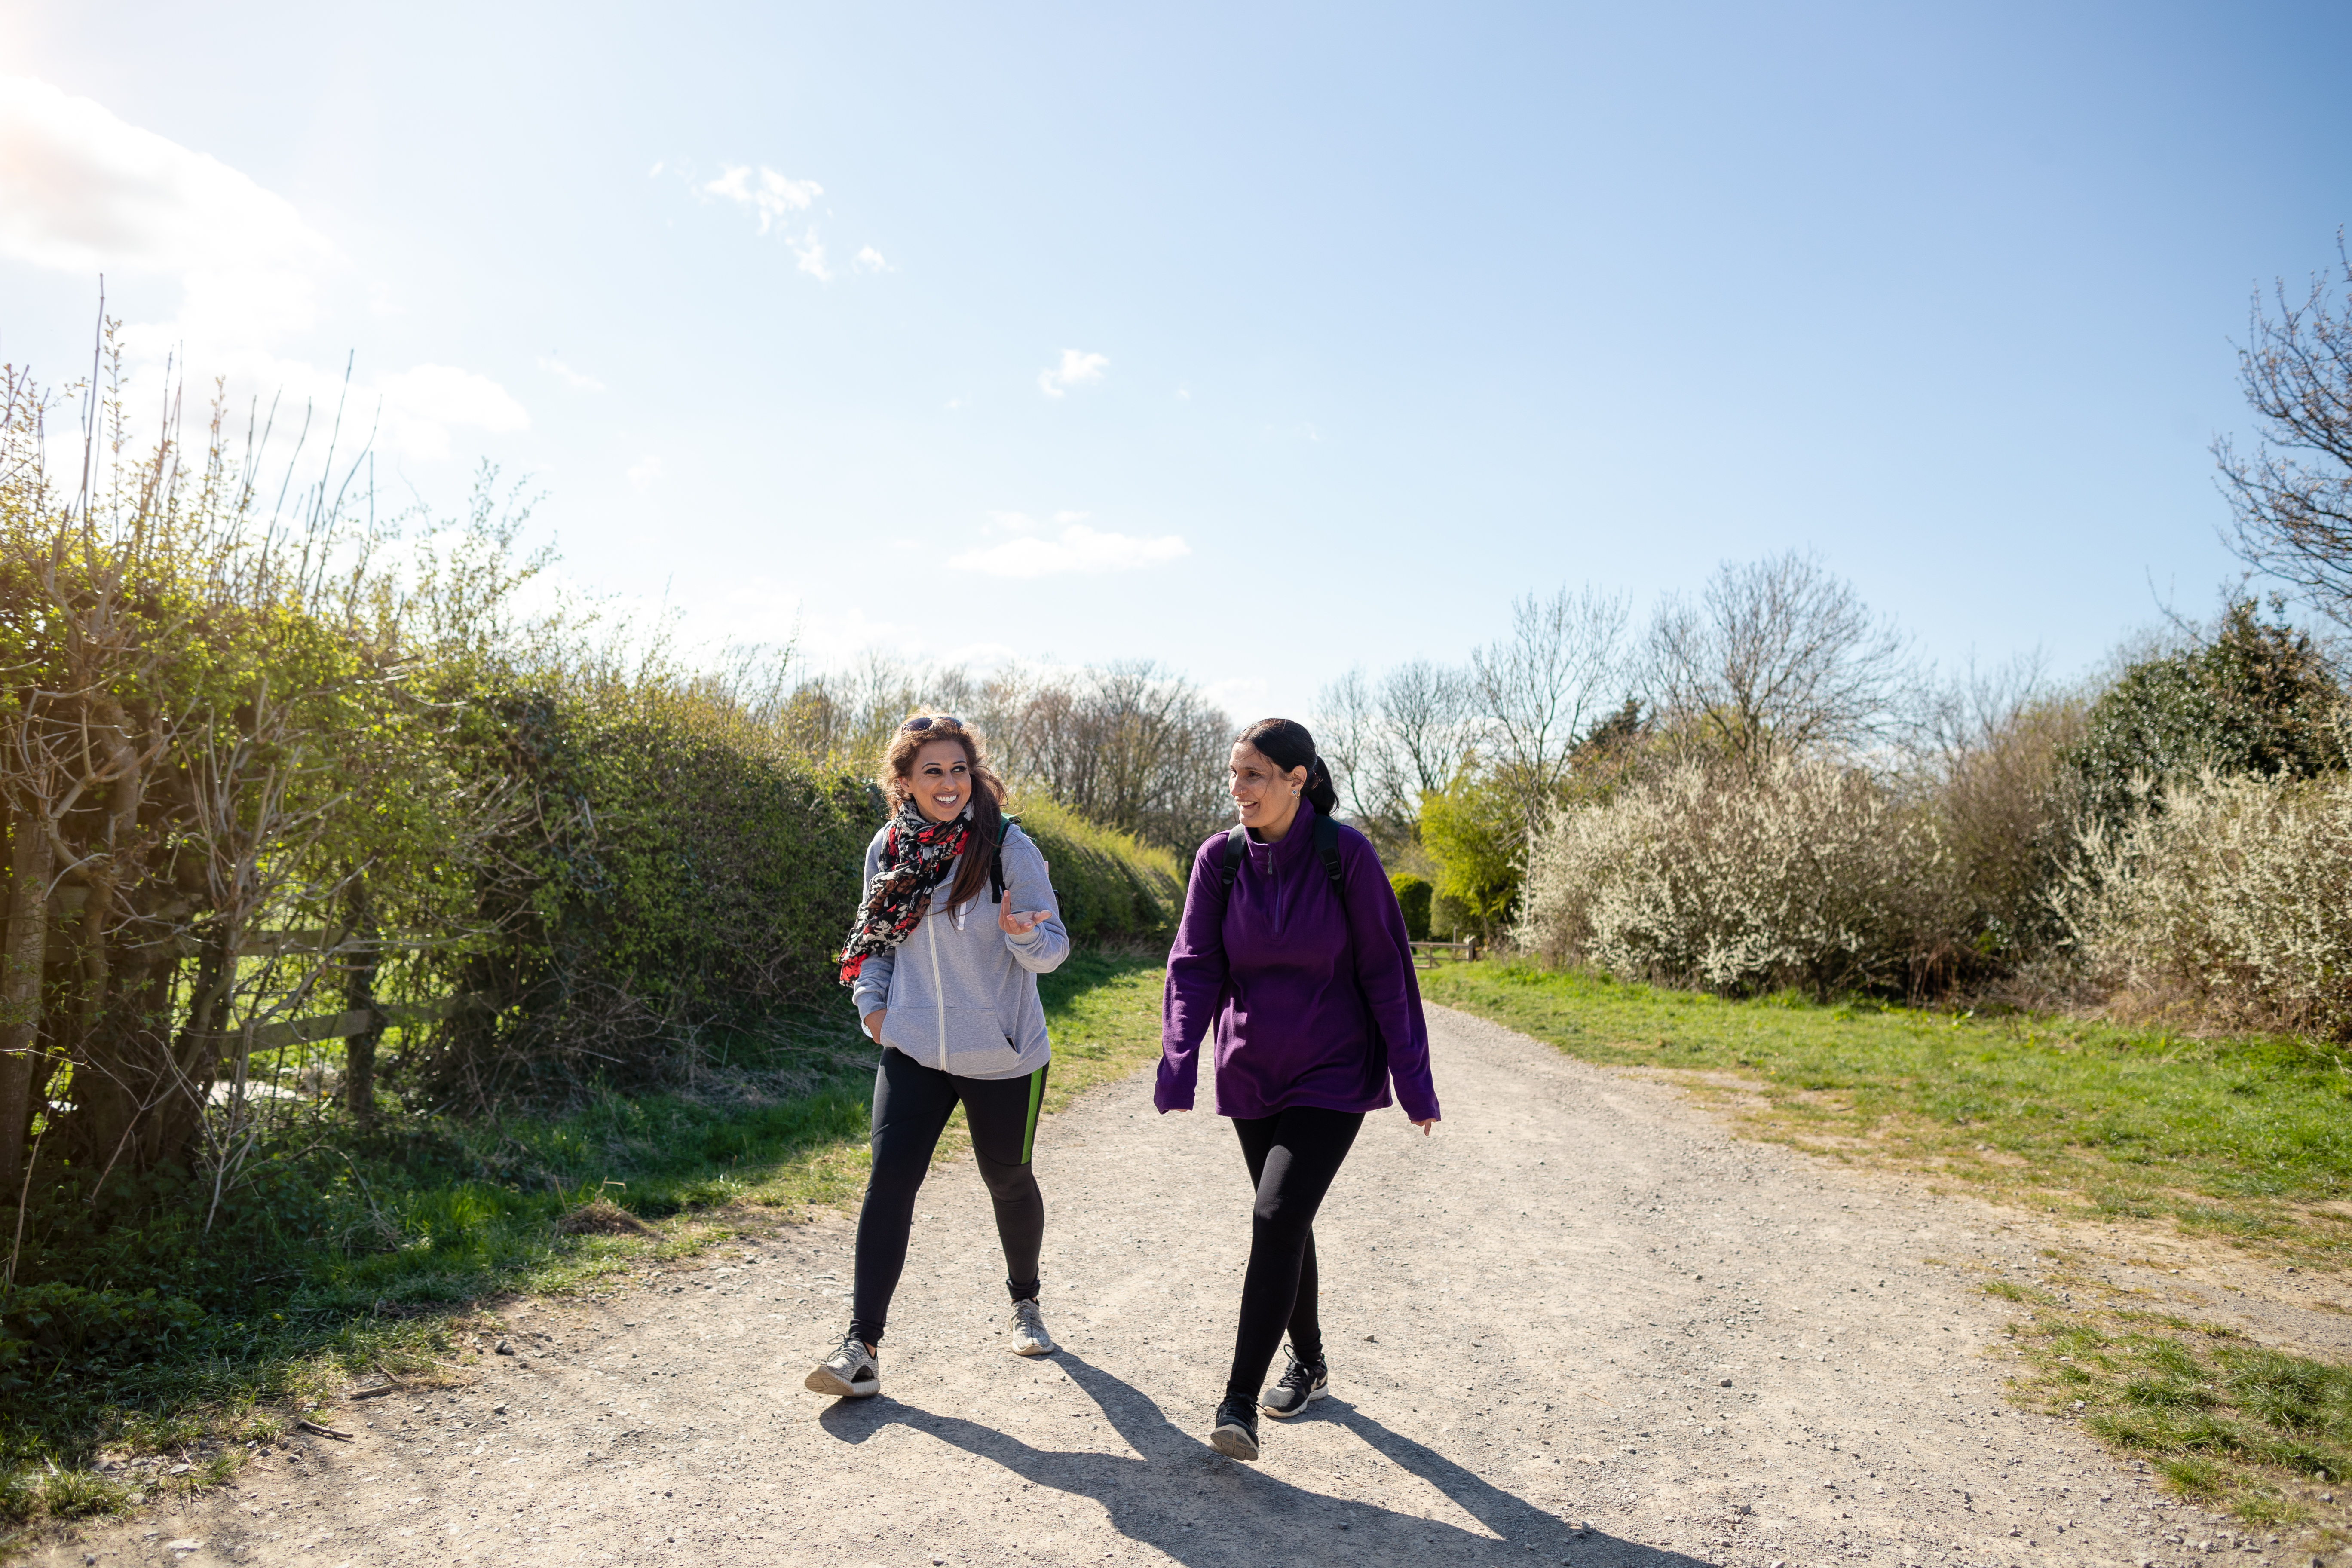 Two women walk side by side along a gravel road, sunshine, blue skies and green hedges on either side